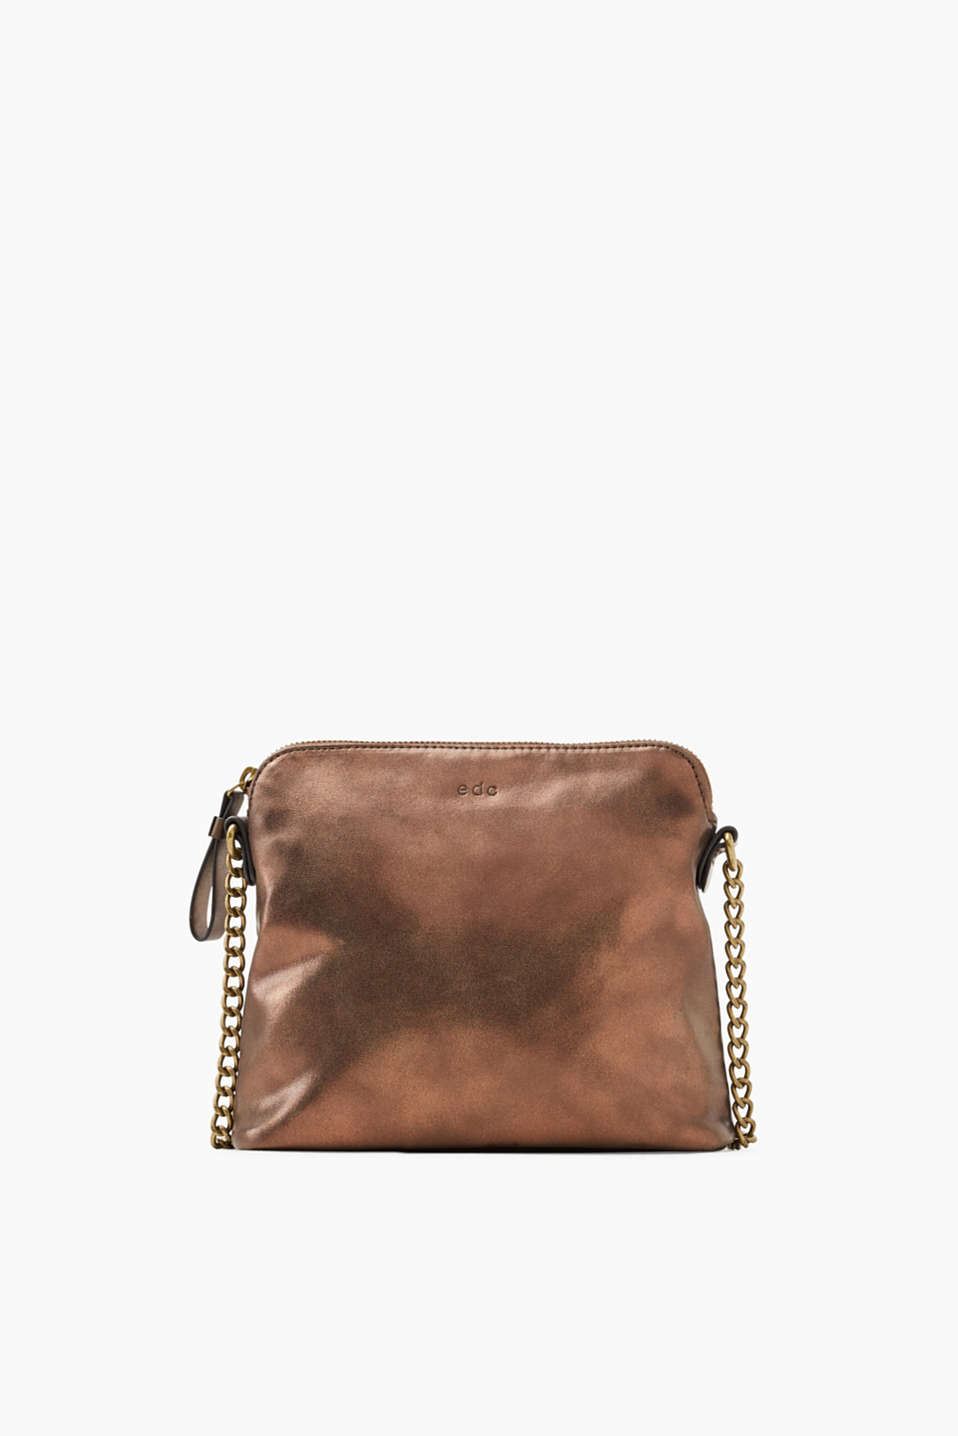 The metallic look in a vintage finish makes this small shoulder bag a cool style accessory.